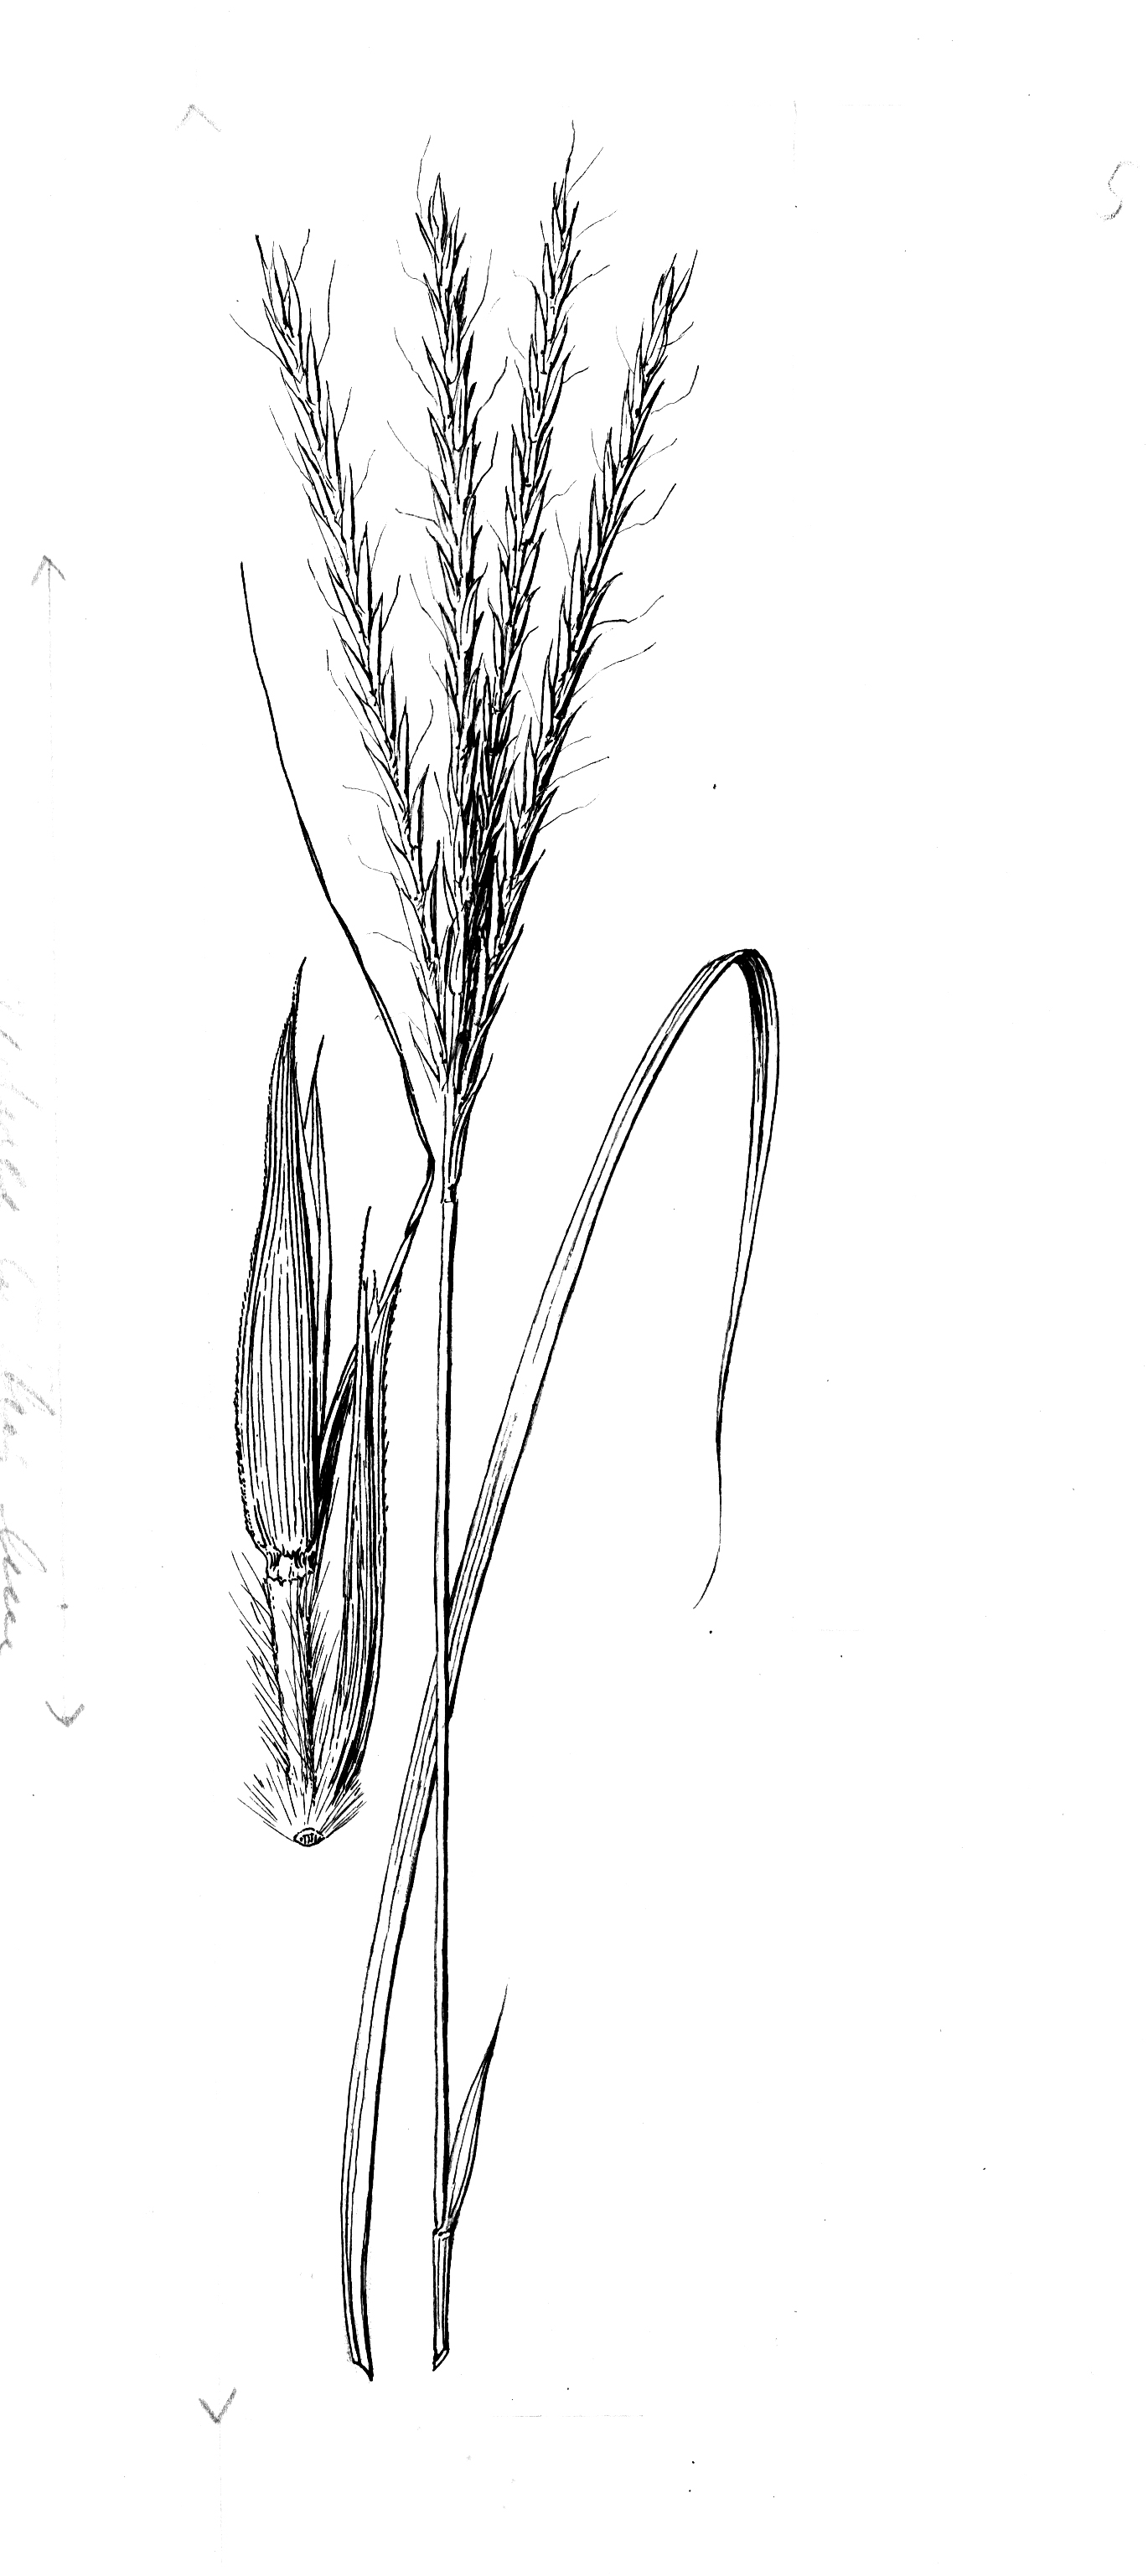 Catalogue of the Botanical Art Collection at the Hunt